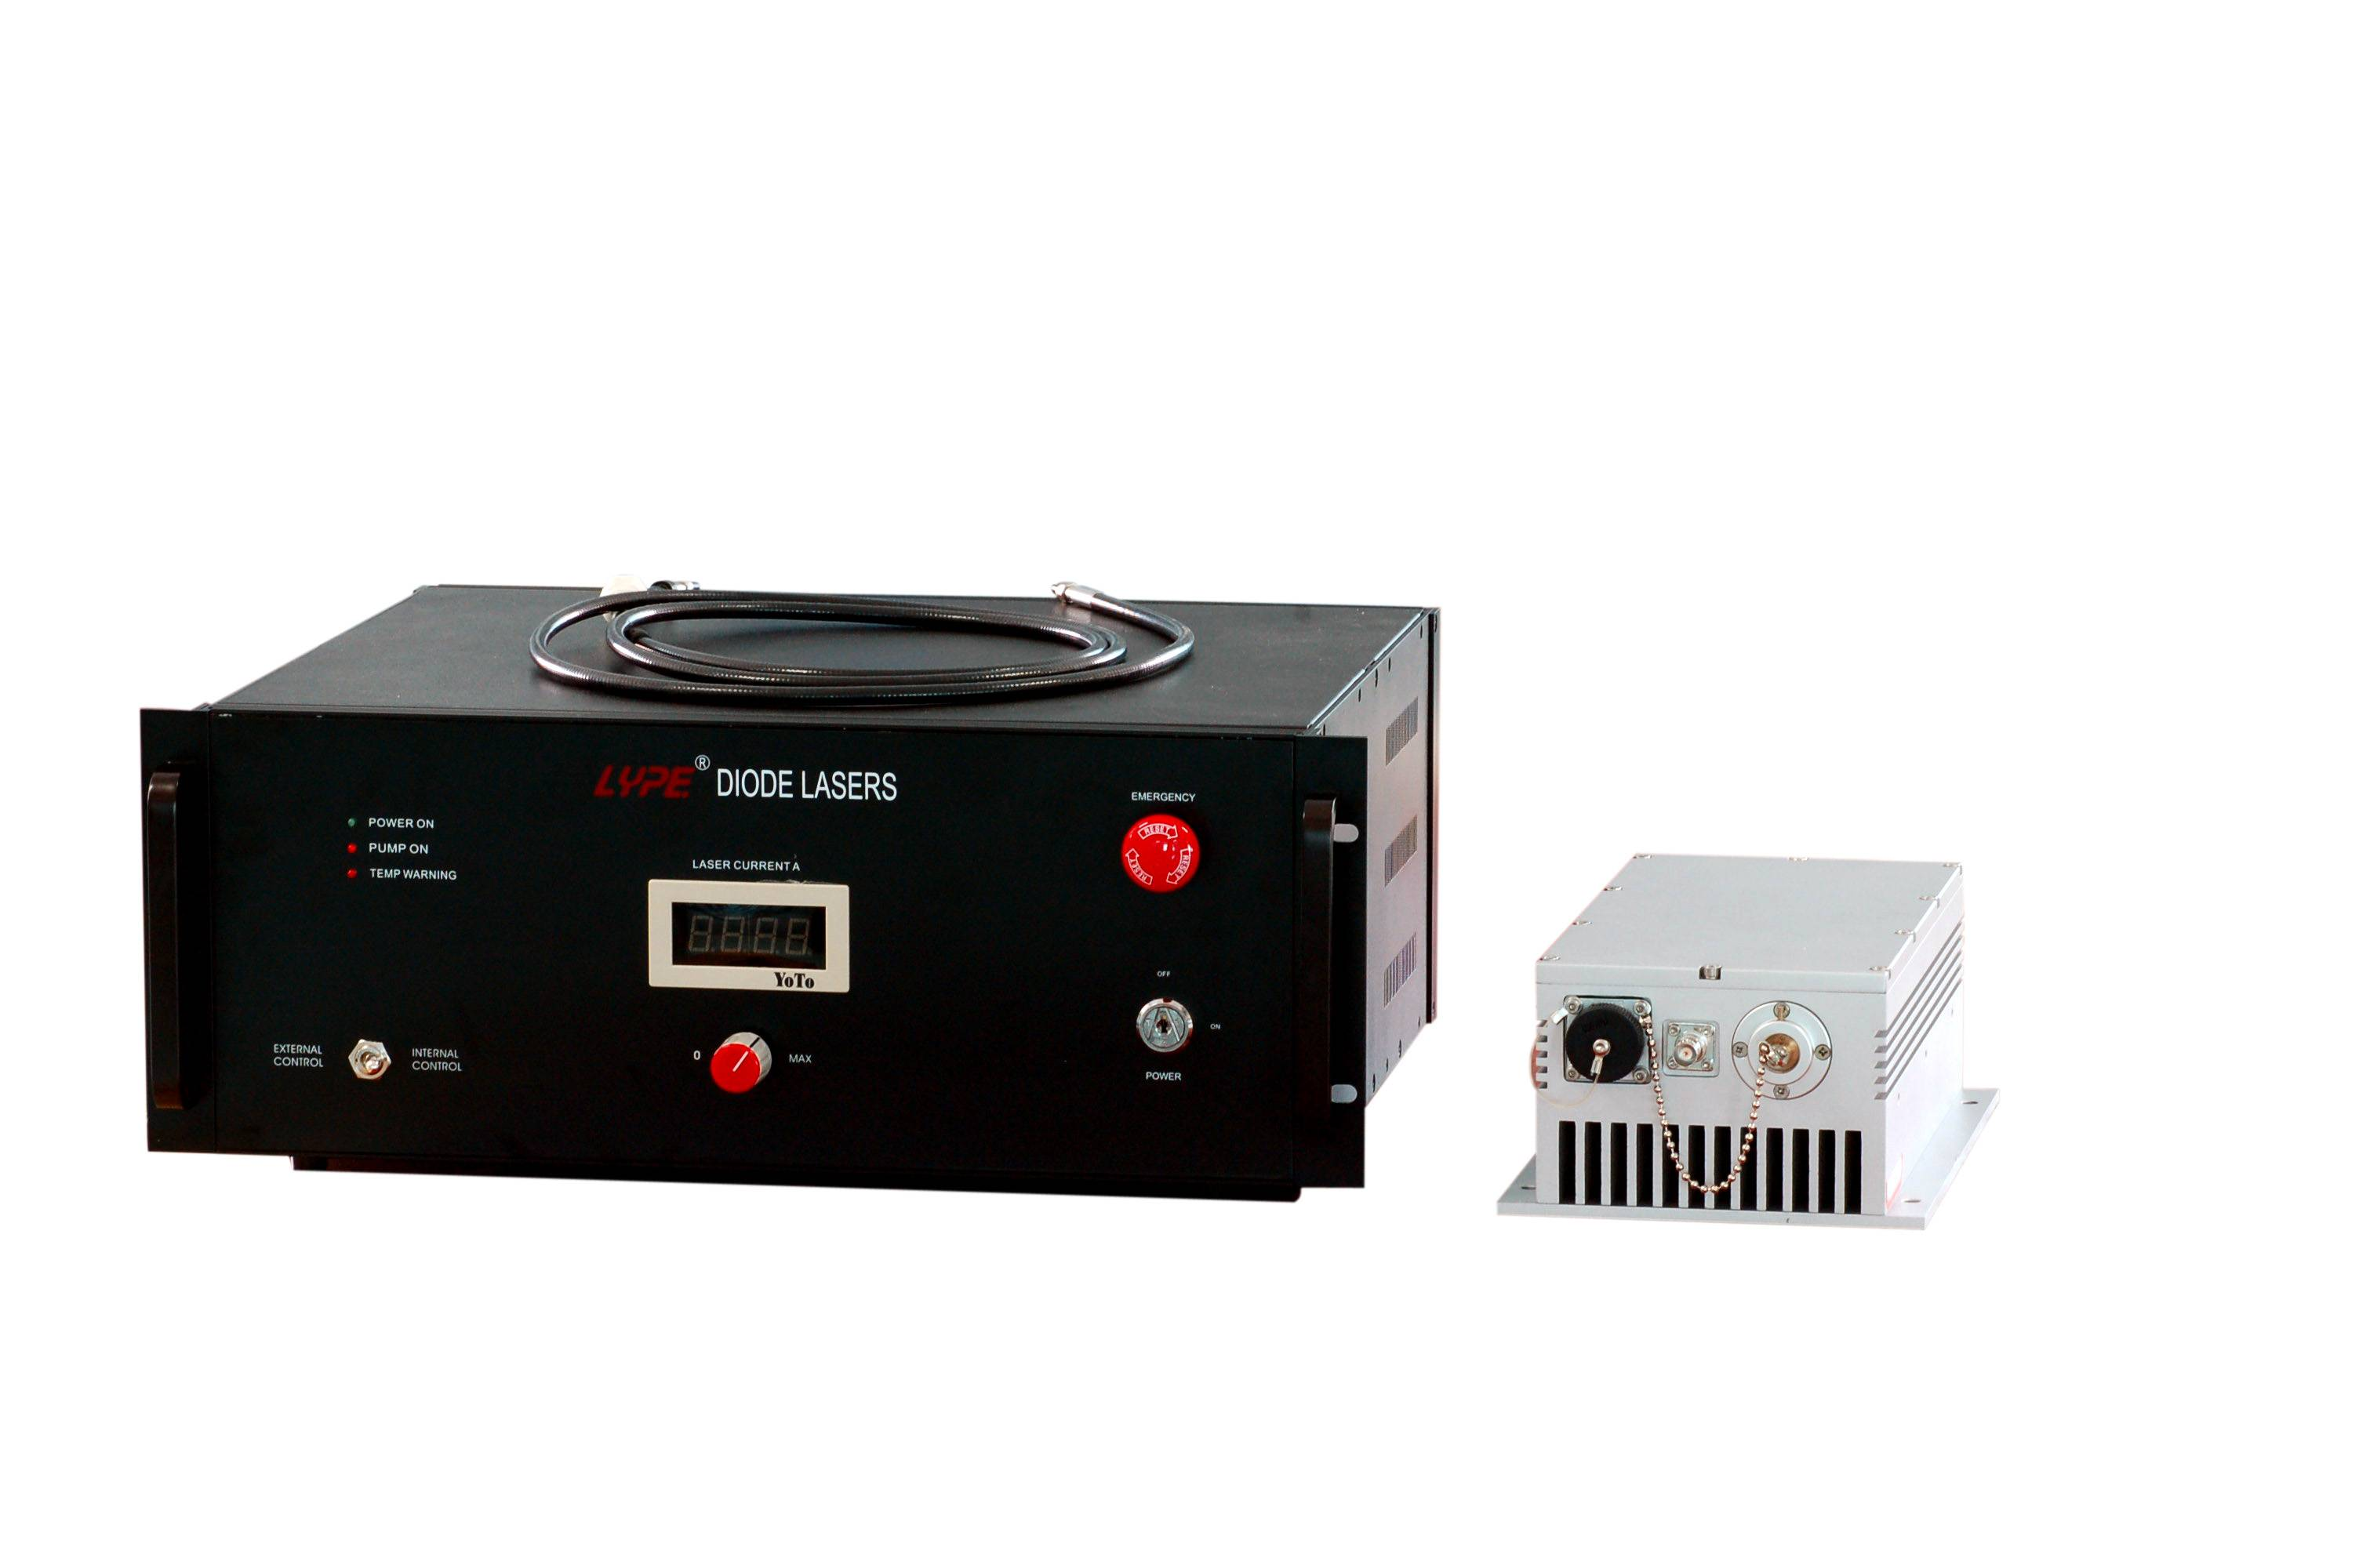 End Pumped Solid State YAG Lasers